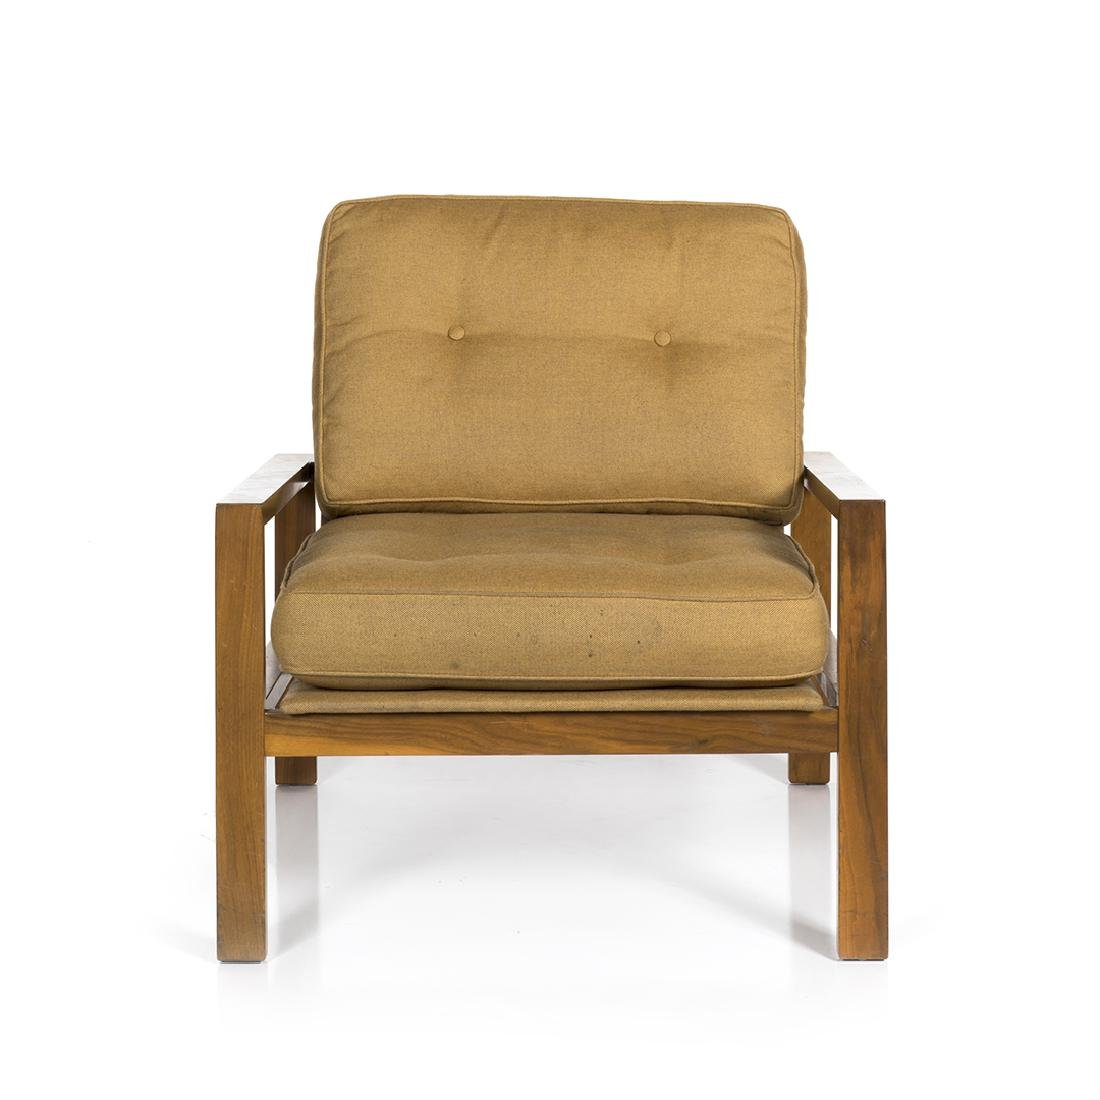 Van Keppel and Green Prototype Lounge Chair - 2